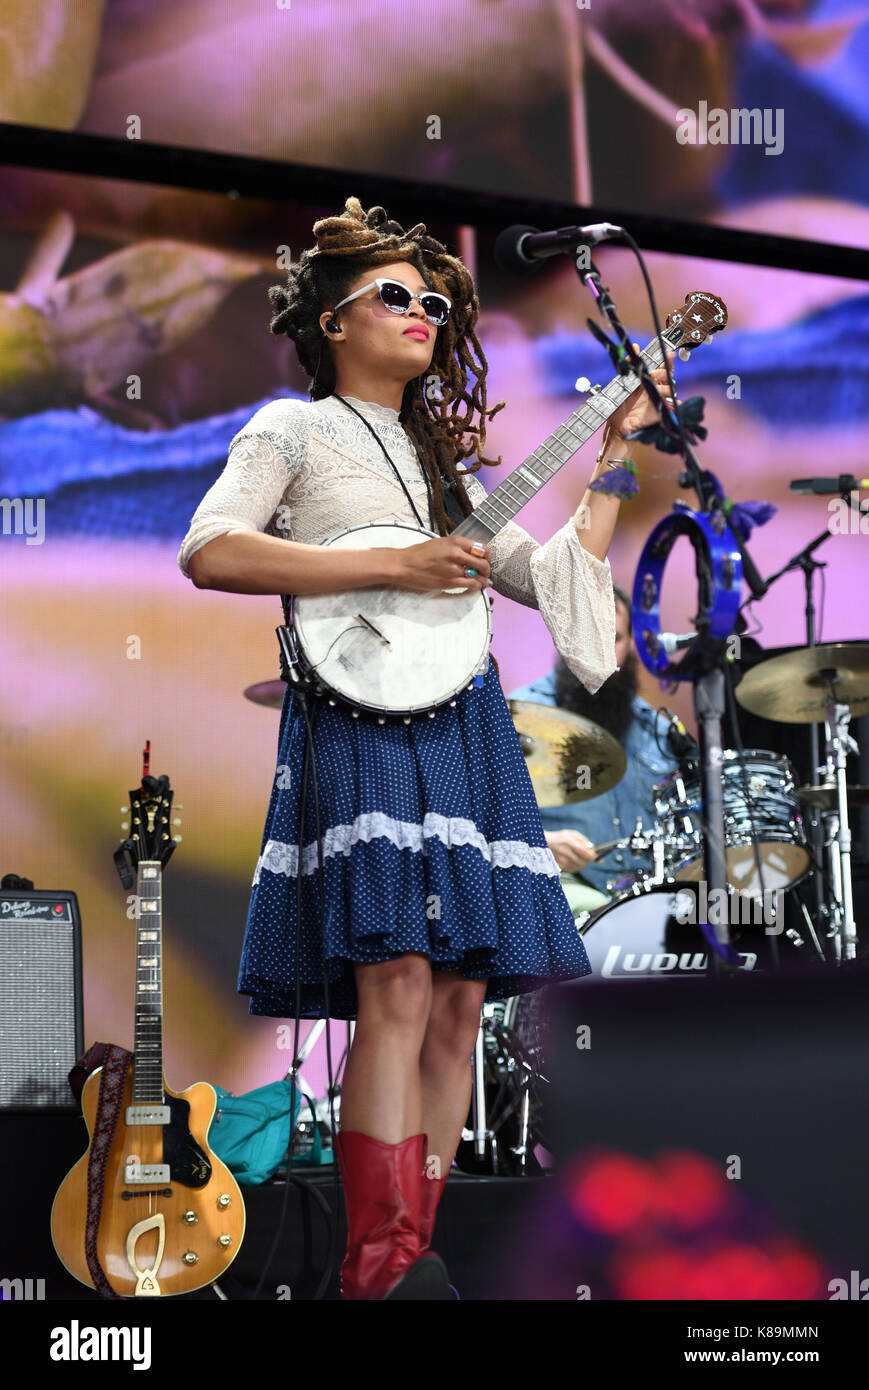 Burgettstown, PA, USA. 16th Sep, 2017. VALERIE JUNE rocks the crowd at FARM AID 2017 IN BURGETSTOWN, PA. on 16 SEPTEMBER - Stock Image